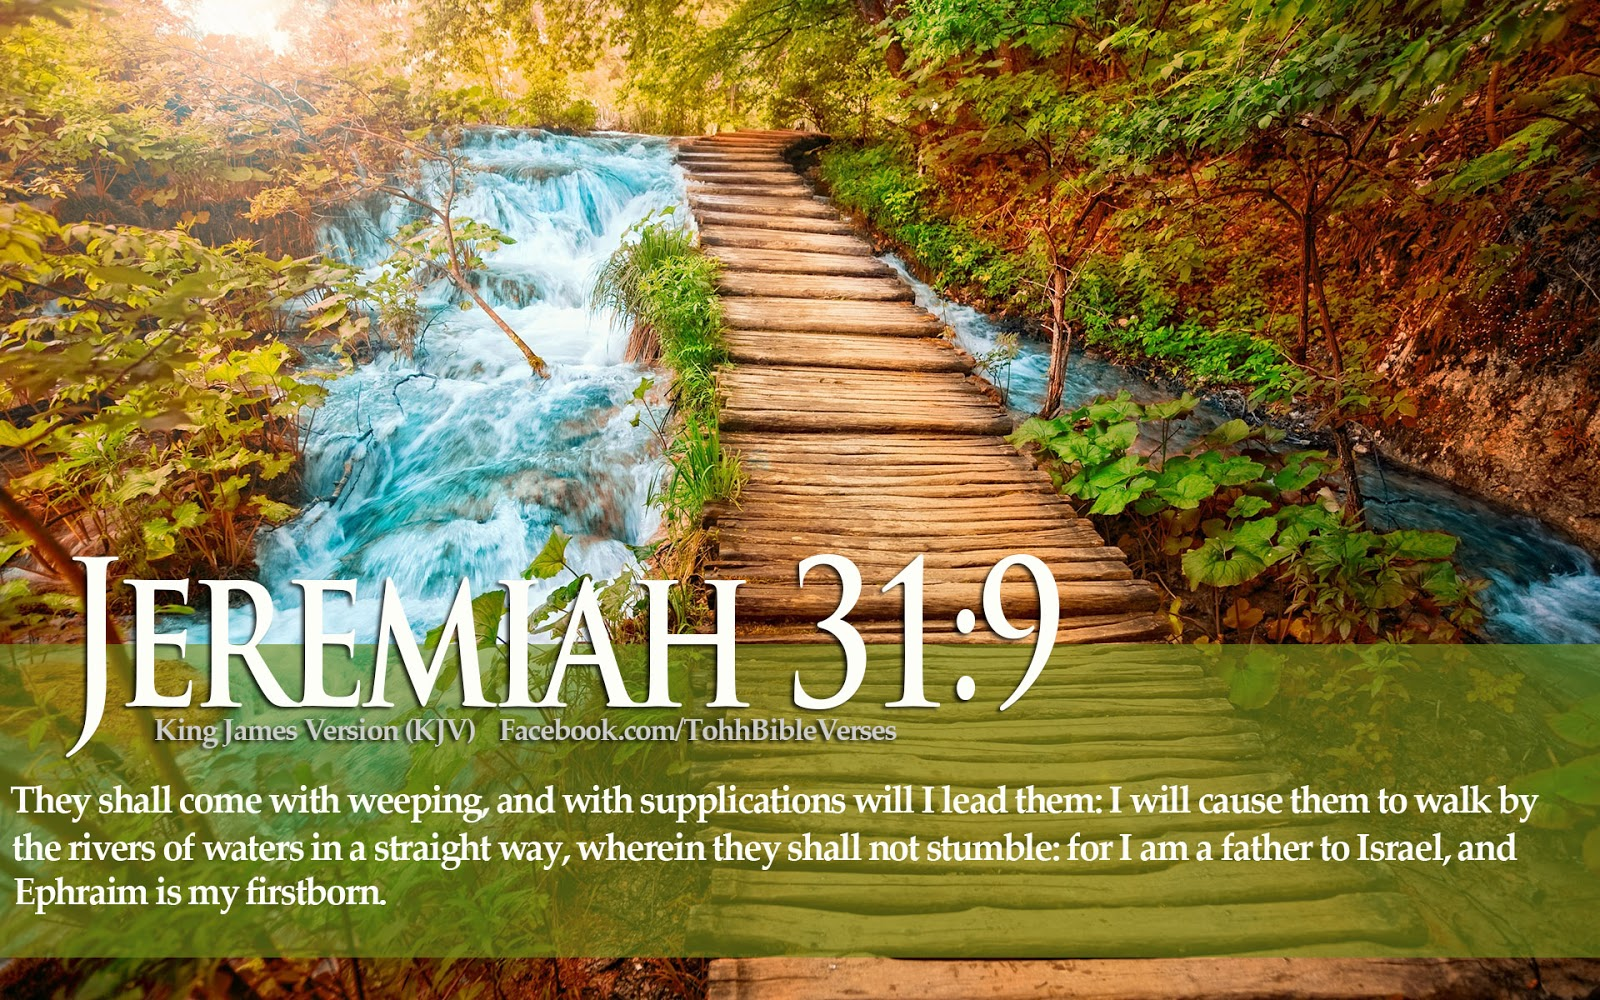 Download hd christmas new year 2018 bible verse greetings card christian images with bible verses kristyandbryce Gallery